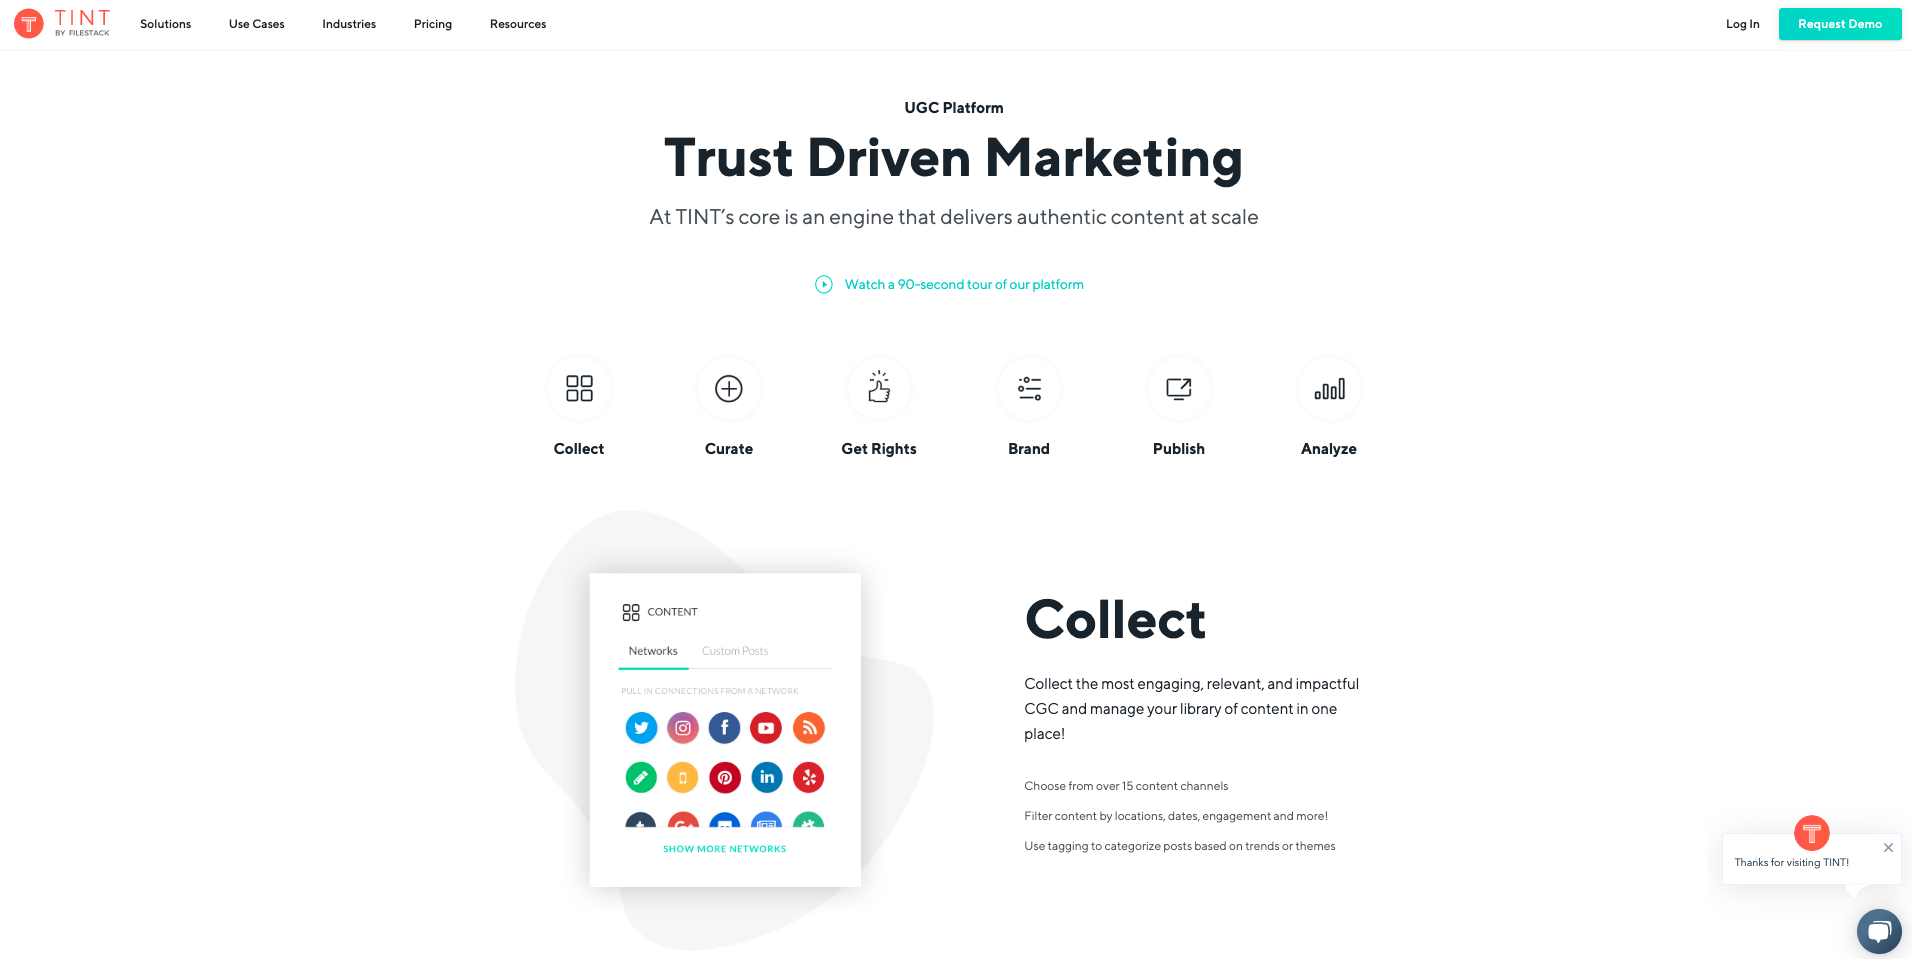 Overview of TINT platform trust driven marketing